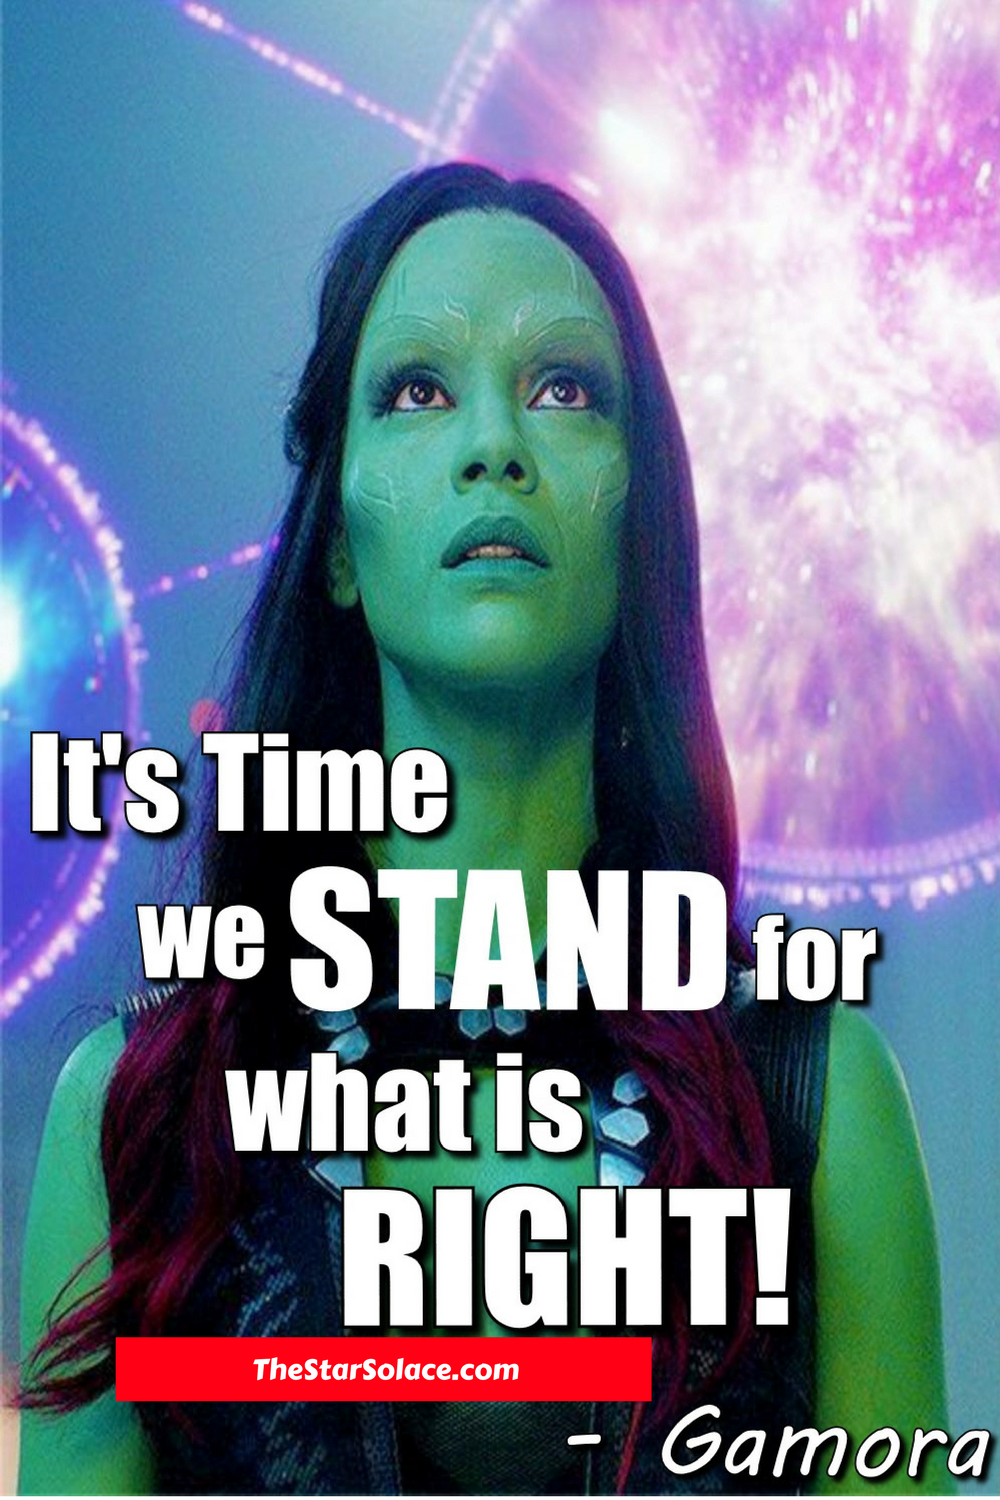 Gamora Guardians Of The Galaxy 2 Movie Quotes Words Life Motivation Inspiration Inspirational Words Of Wisdom Inspirational Quotes Inspirational Words